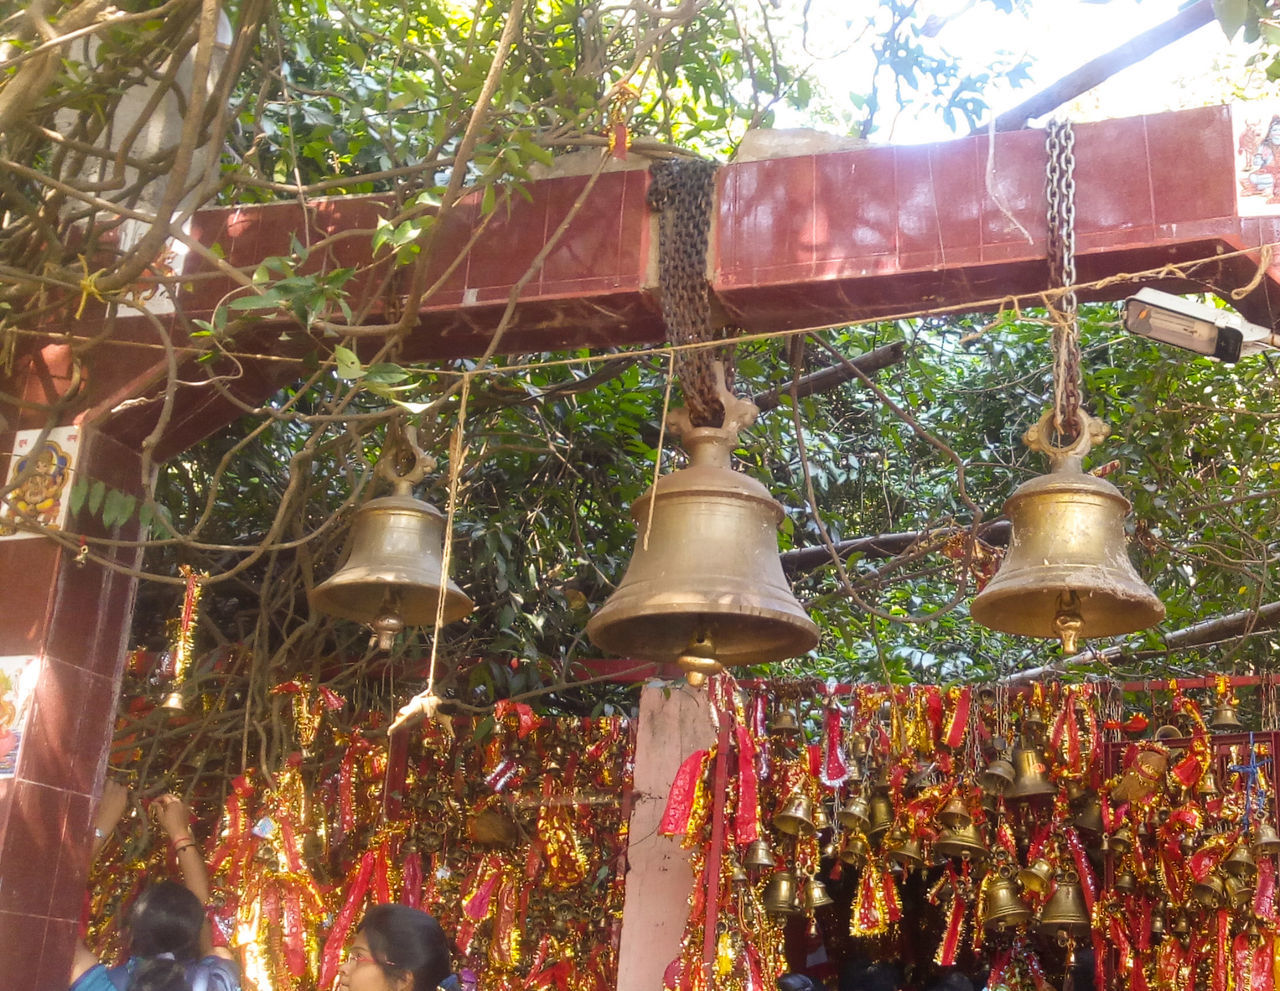 Ghanteshwari Temple- A temple in western Odisha.People offer bells to goddess Ghanteswari or the Deity of Bells, after fulfillment of their wishes. Faith&devotion Devotees Bells Temple Temple Bells Odisha Ghanteswari 43 Golden Moments